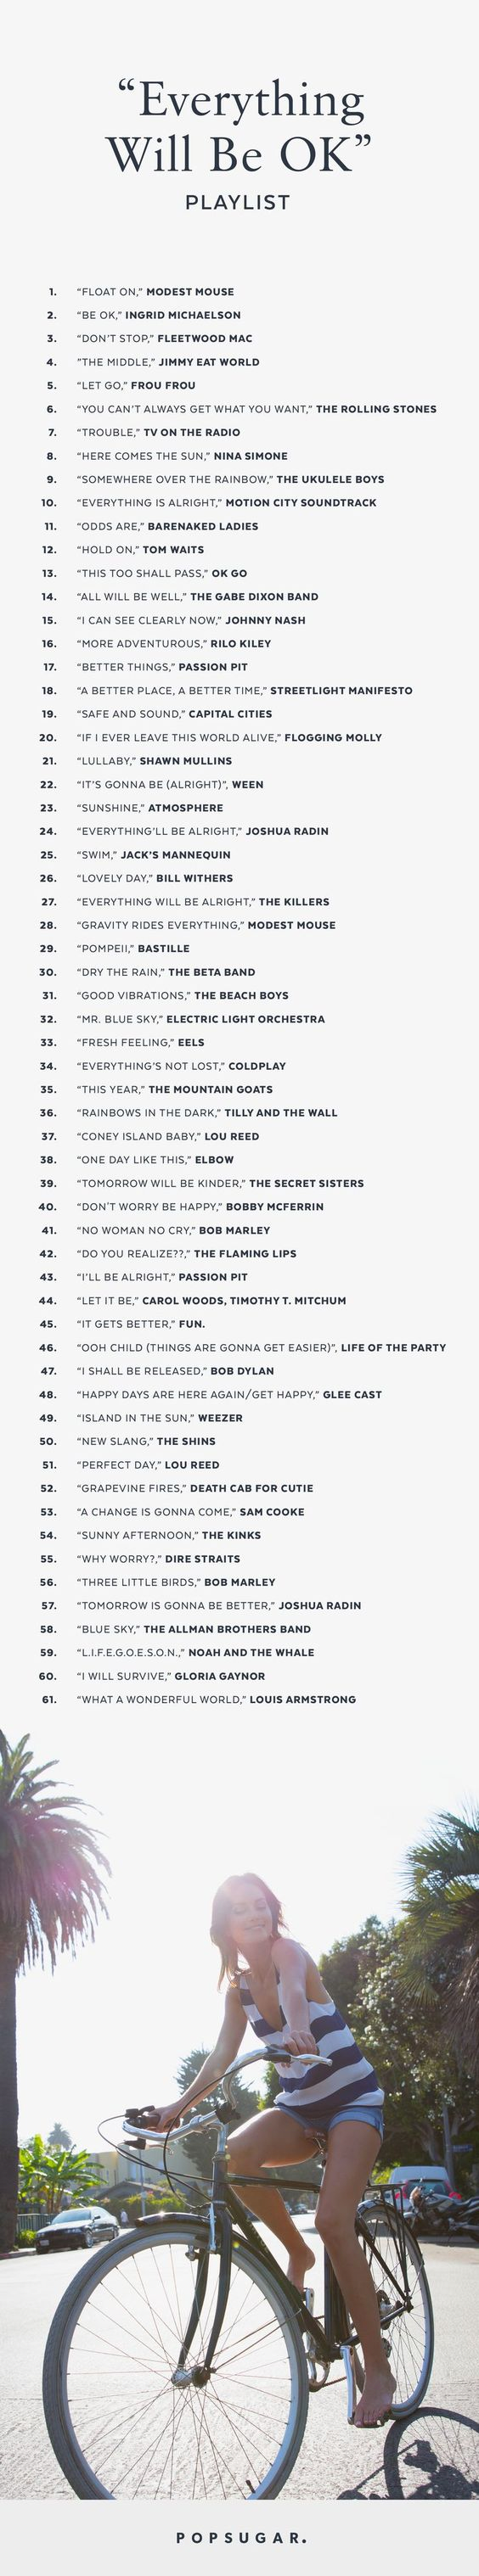 A recent Reddit thread compiled the perfect list of songs that say, in one way or another, that everything will be OK. This playlist will make you smile and remind you that whatever is going on, it too shall pass.: